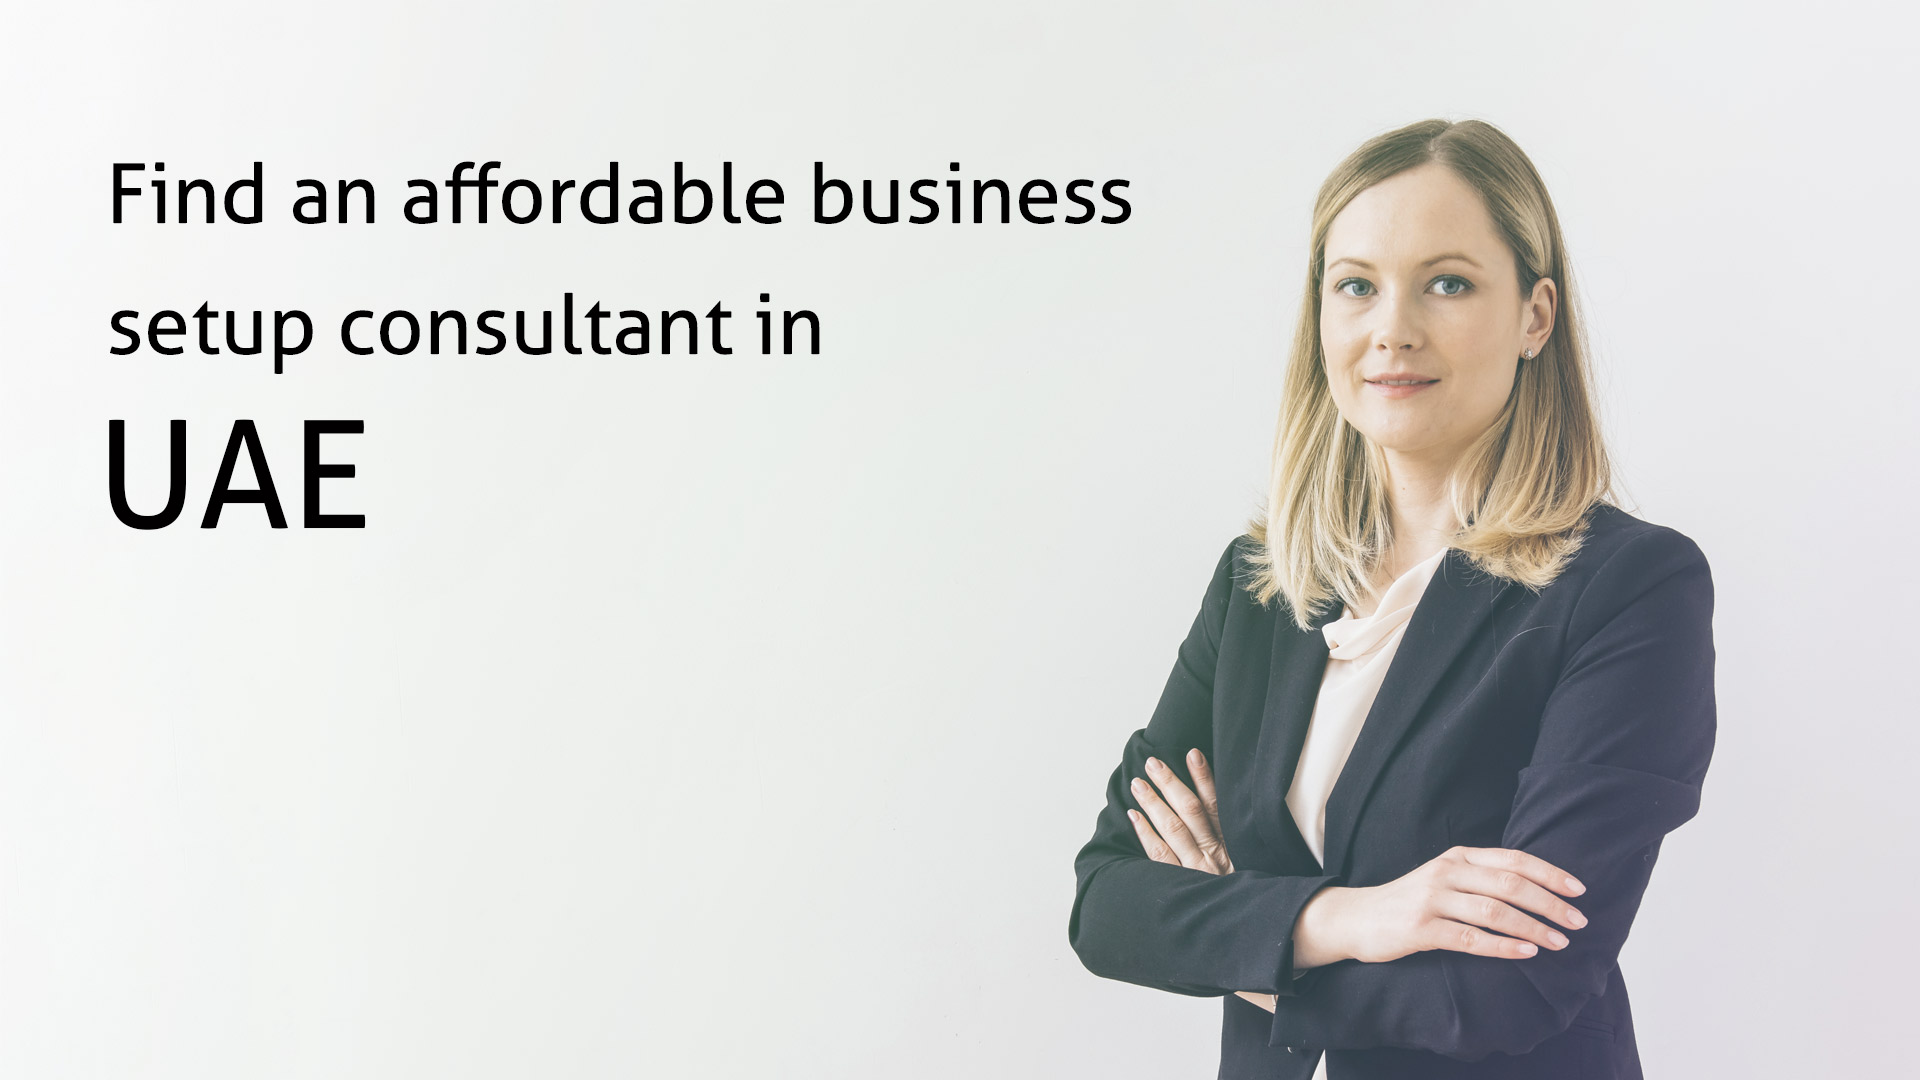 Find an affordable consultant to set up your business in UAE